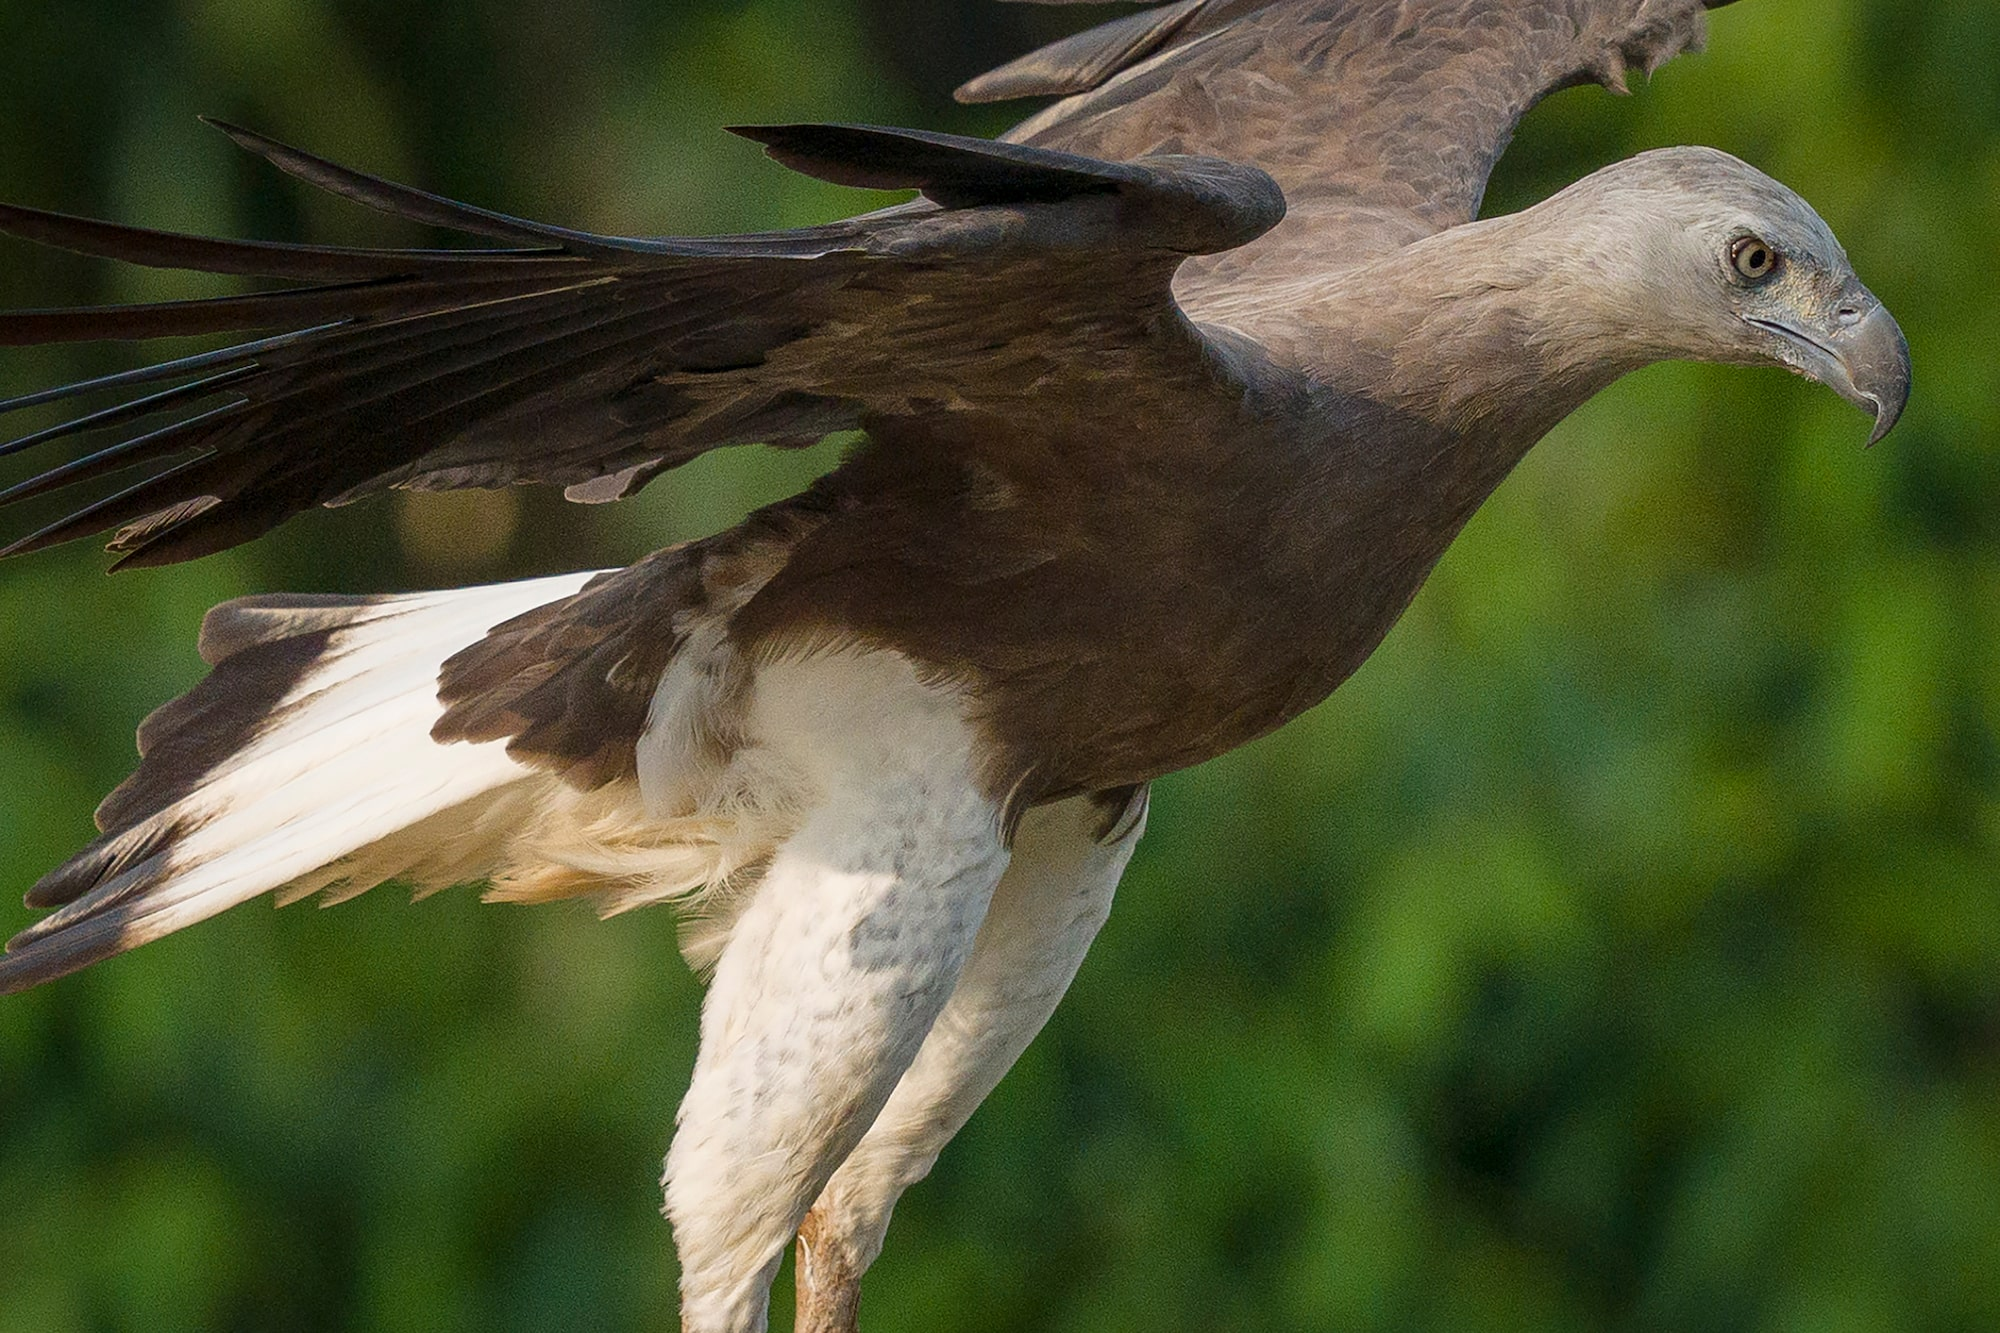 Sony Alpha 7R IV's 61 megapixels retain high resolution even in moderate crop of flying Grey-headed Fish Eagle.